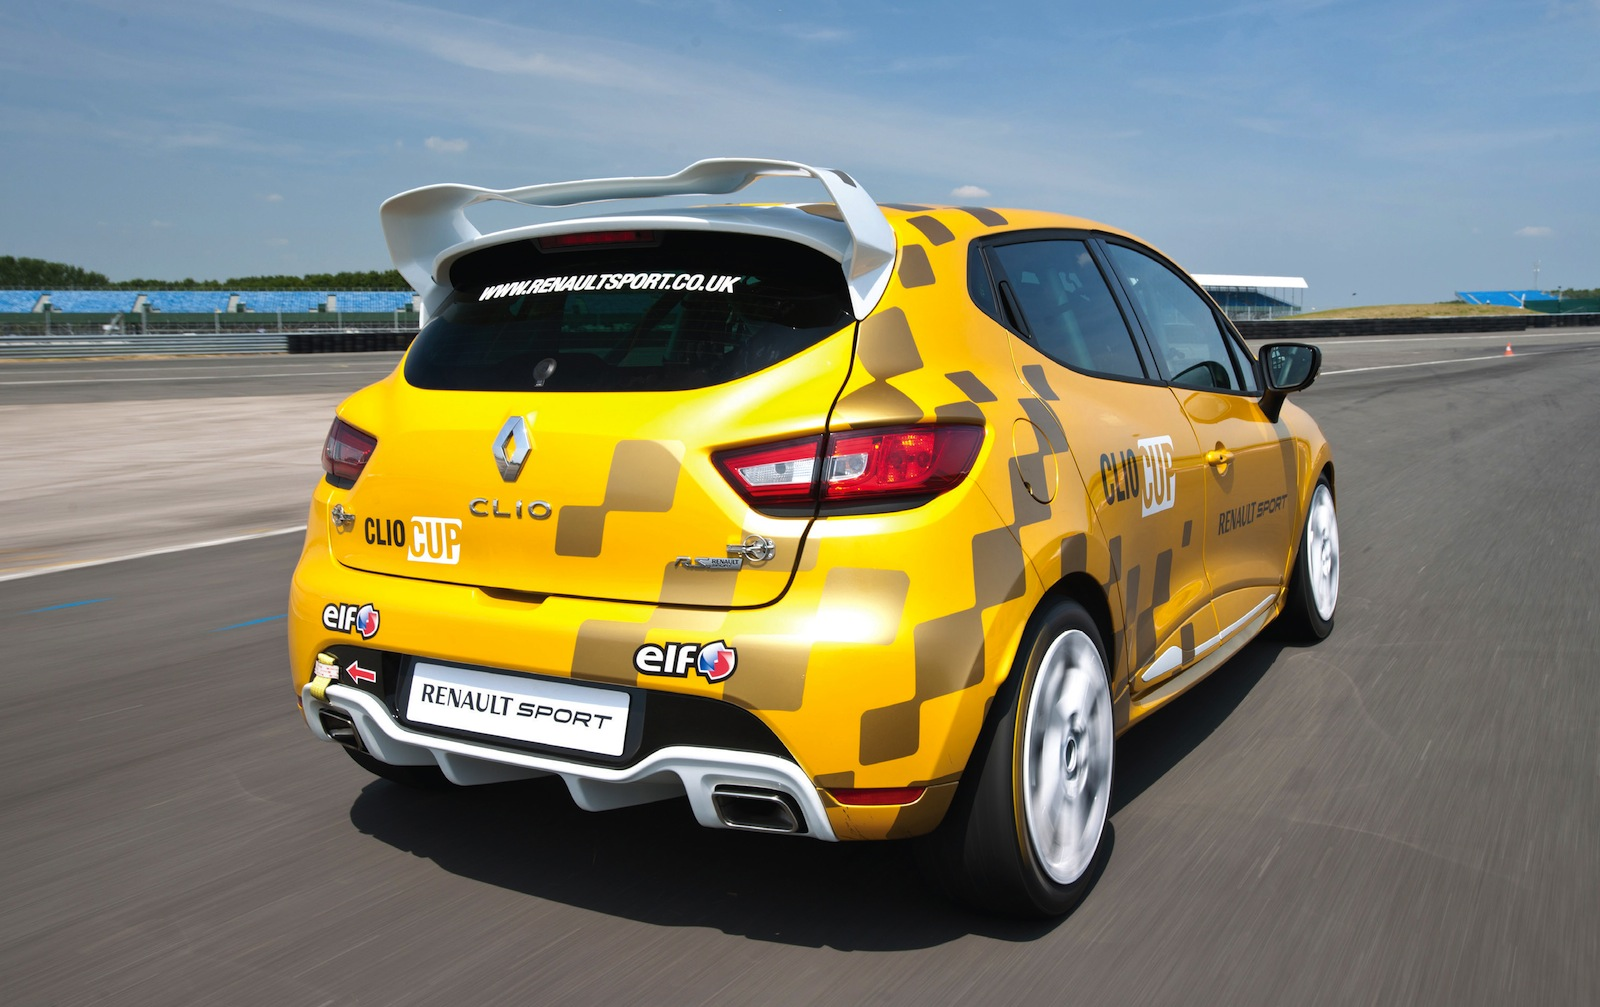 renault clio cup revealed ahead of 2014 racing season photos caradvice. Black Bedroom Furniture Sets. Home Design Ideas